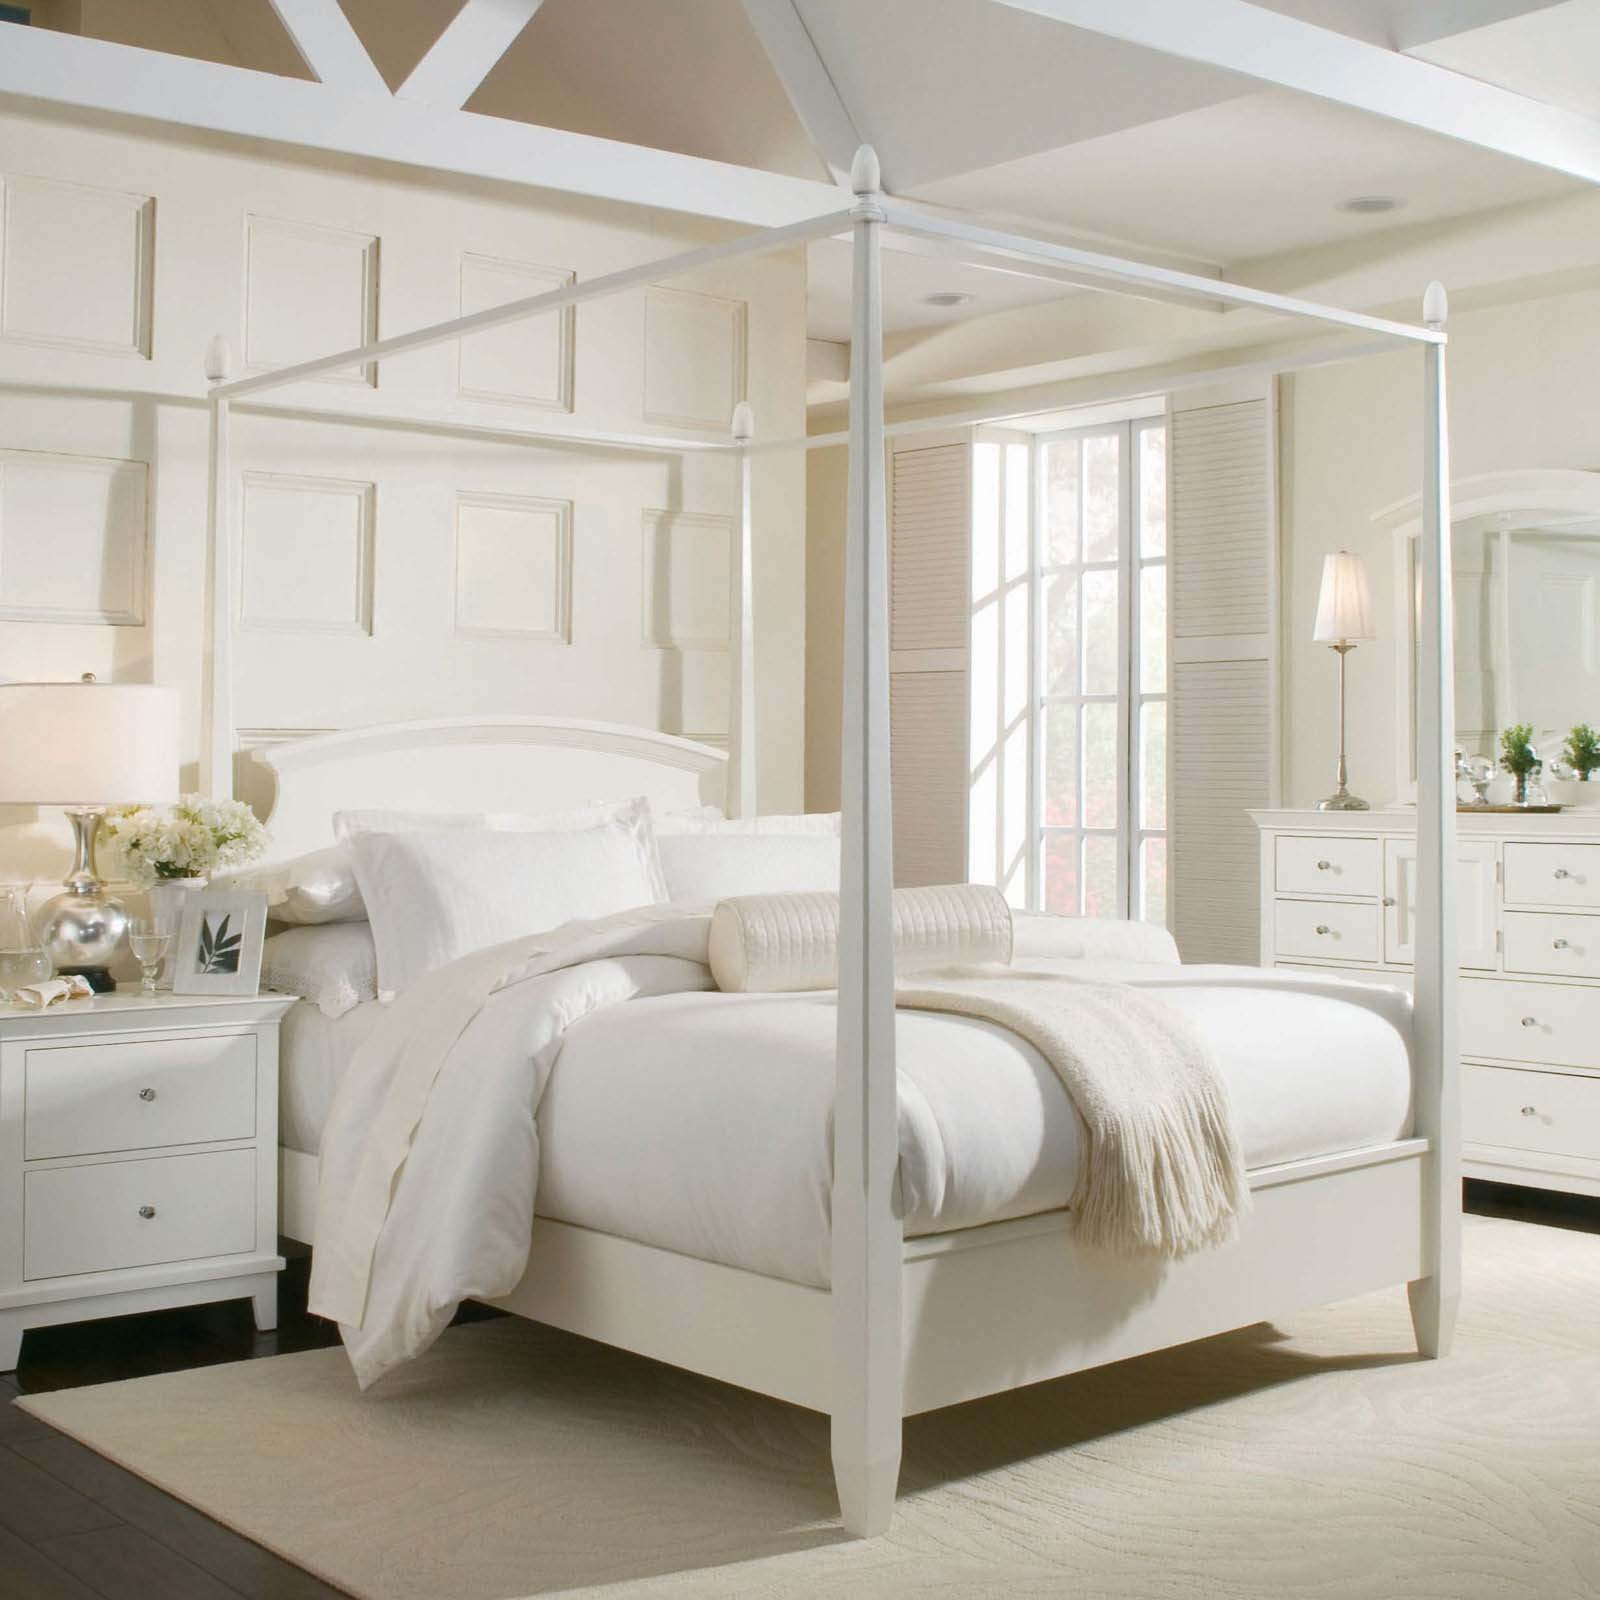 Attractive Bedroom Decor Using Modern Canopy Bed Also Table Lamp On Dresser